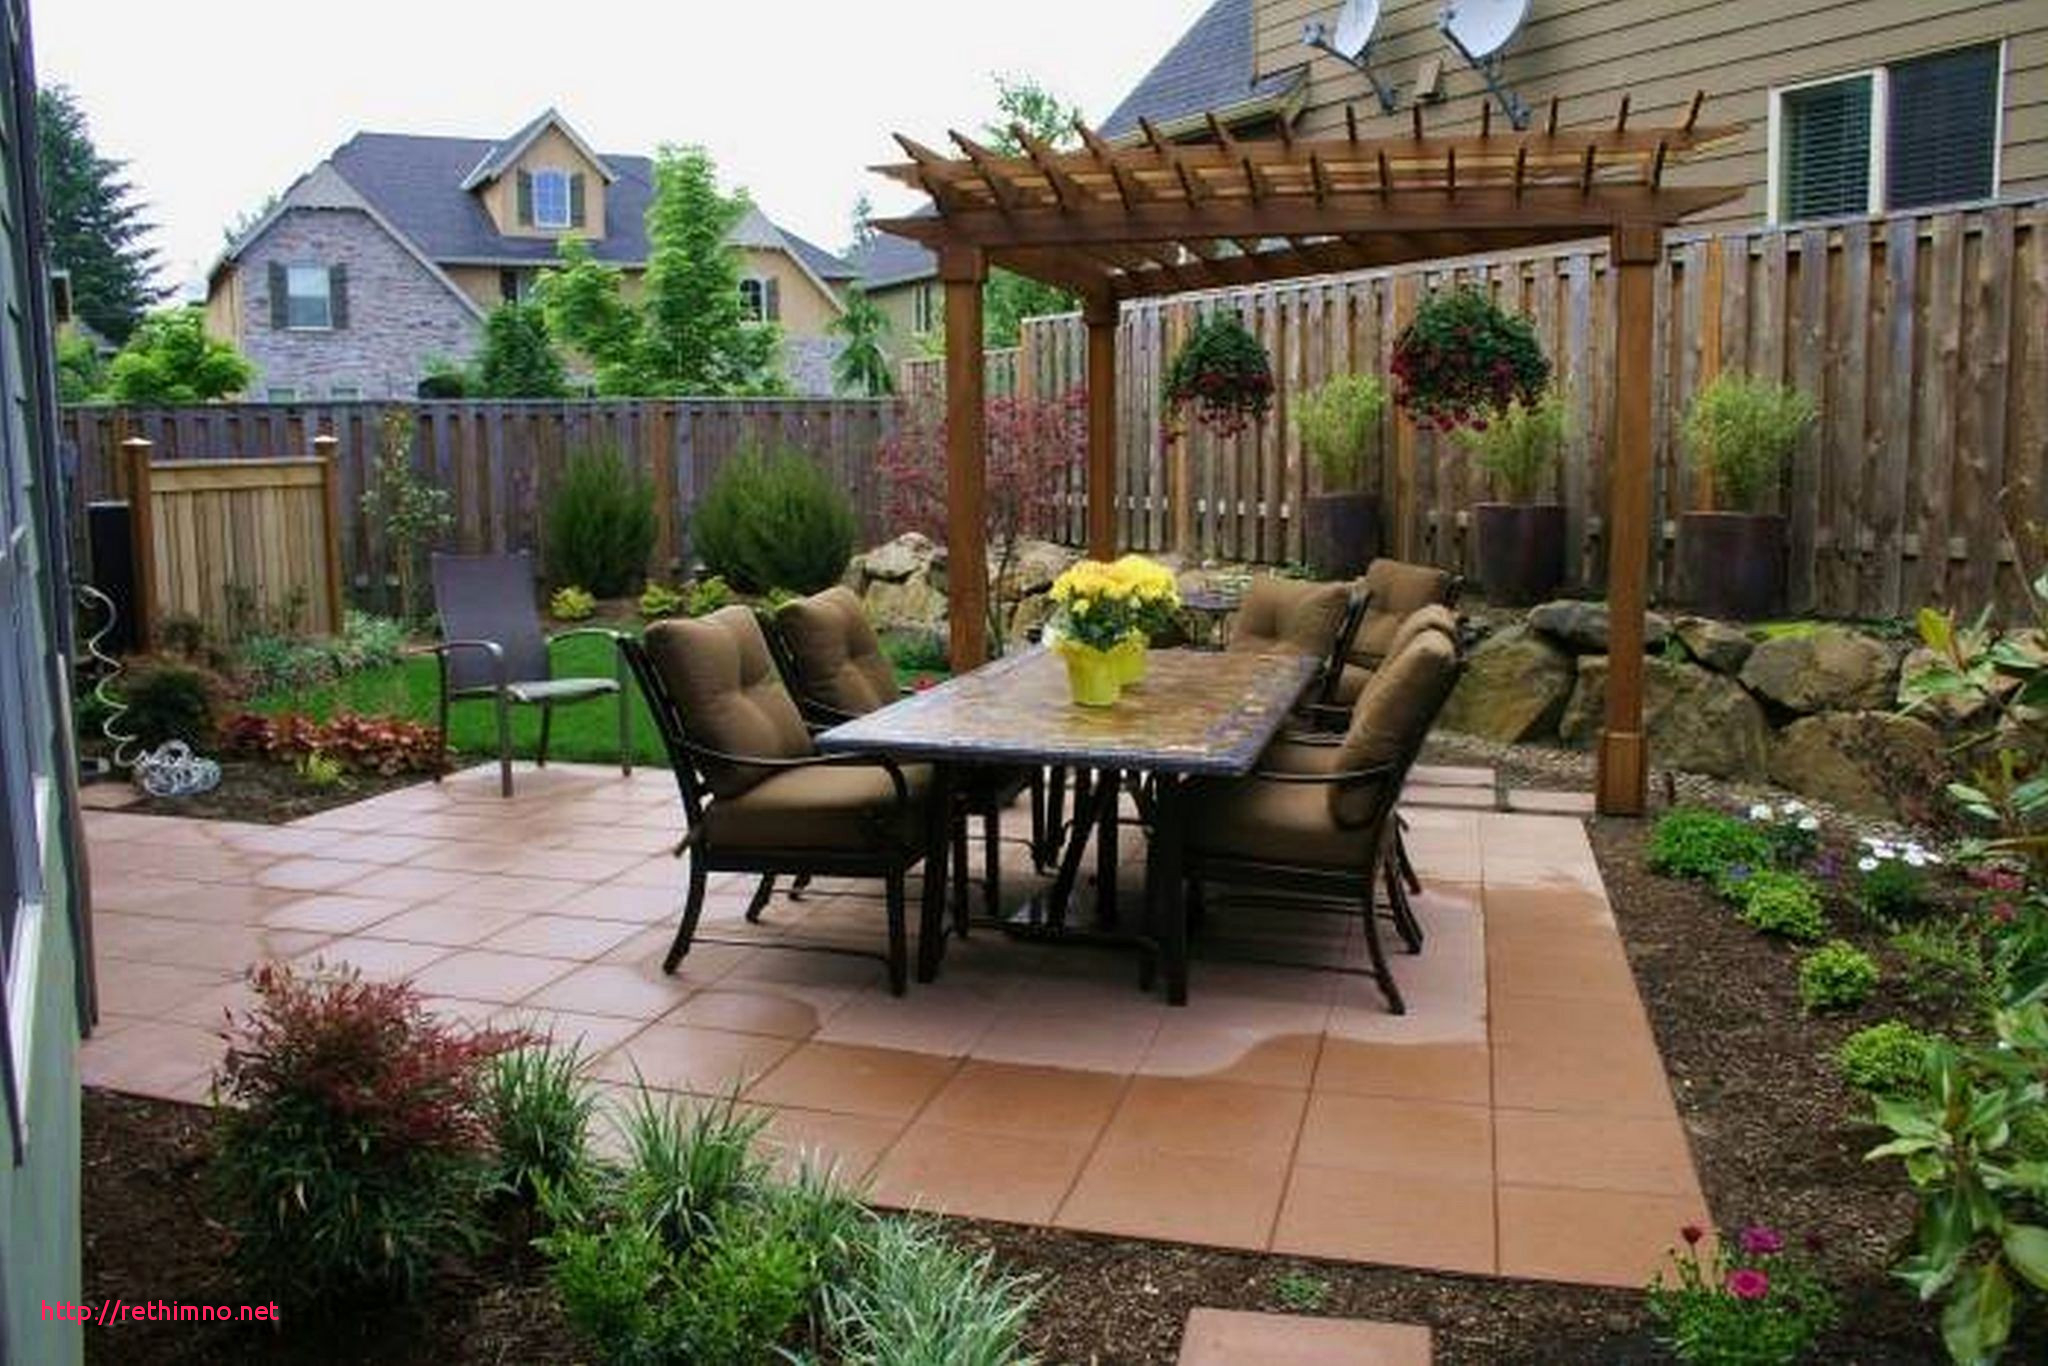 Awesome Arizona Backyard Ideas On A Budget Rethimno with regard to Backyard Ideas For Small Yards On A Budget